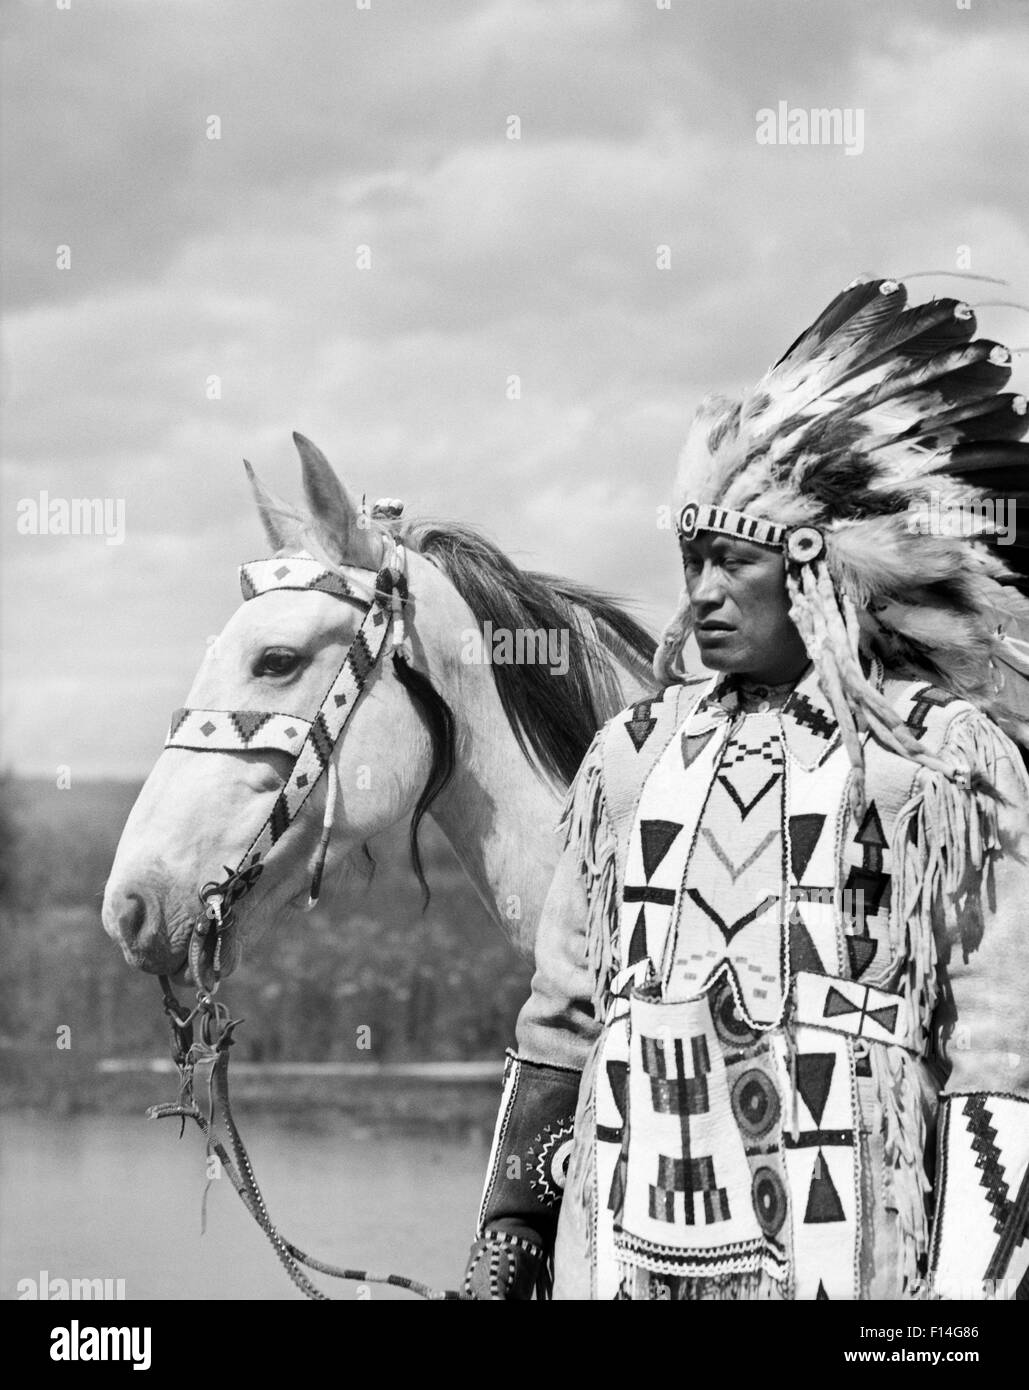 1920s PORTRAIT NATIVE AMERICAN INDIAN CHIEF FULL FEATHER HEADDRESS BEADED CLOTHES HORSE STONEY SIOUX TRIBE ALBERTA - Stock Image